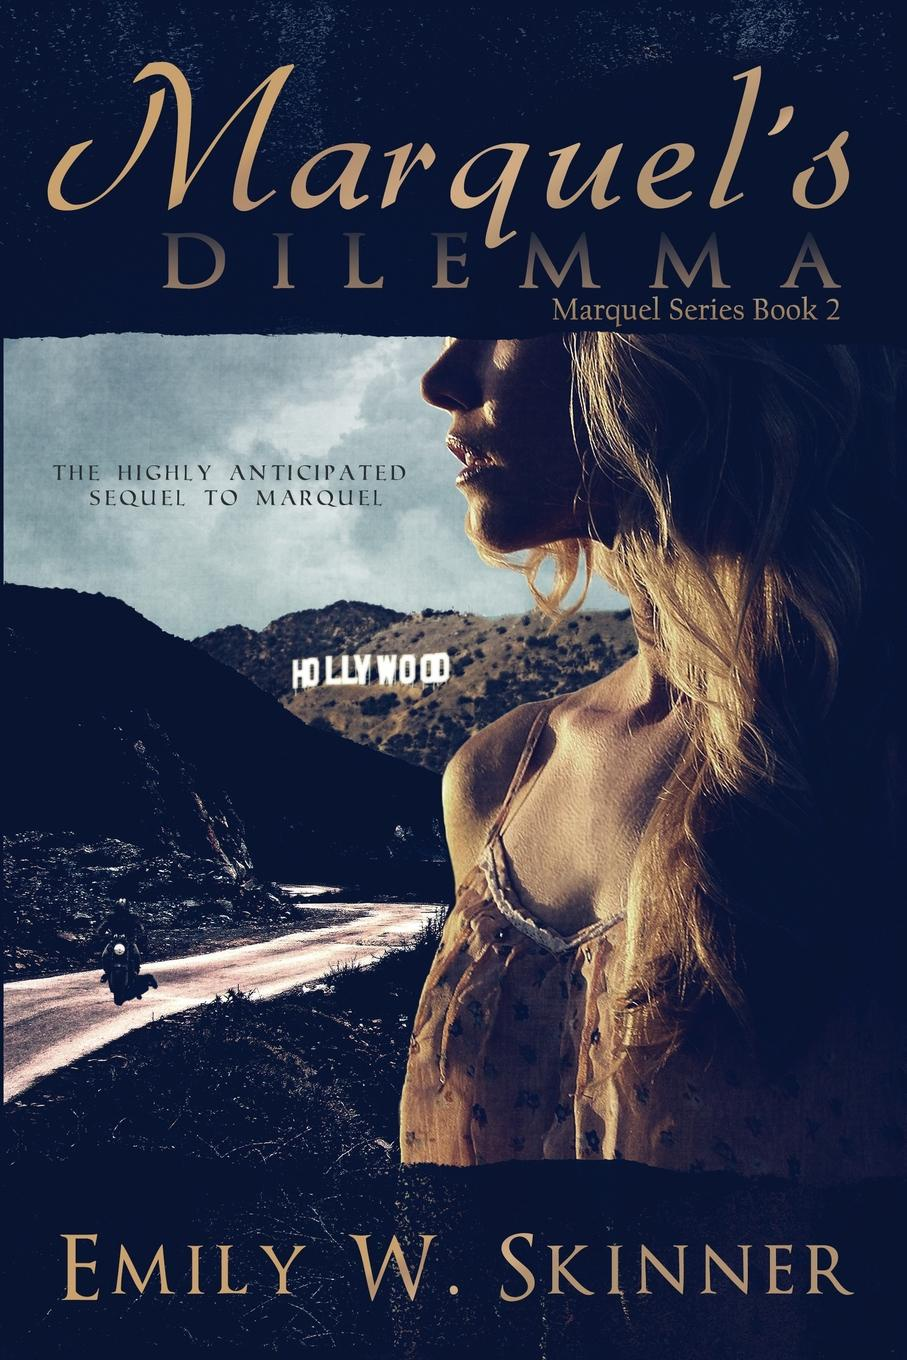 Emily Skinner Marquel.s Dilemma. (Book 2) in the Marquel Series miranda lee a daughter s dilemma